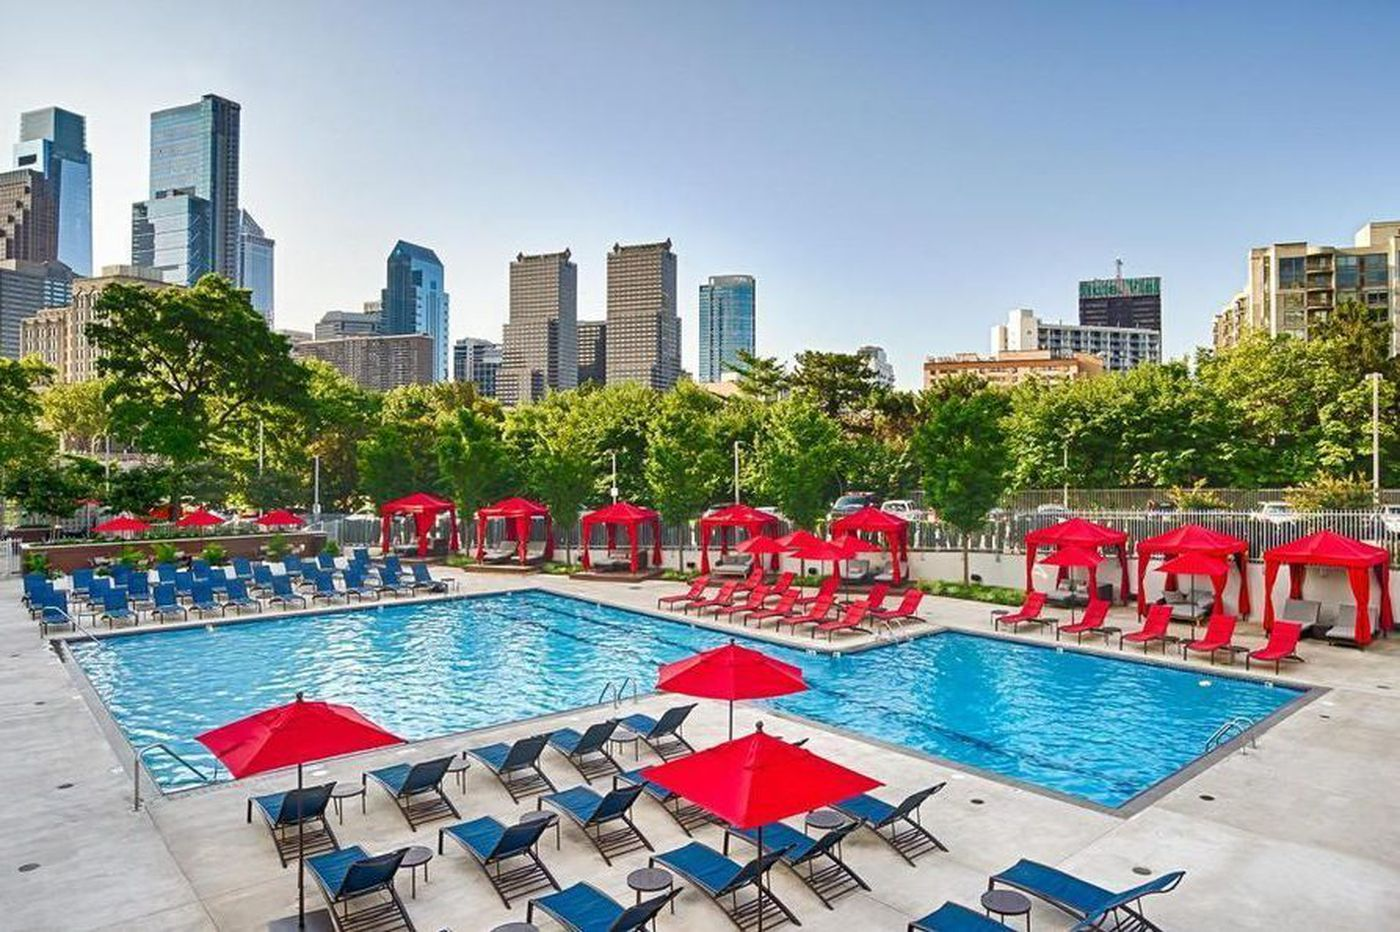 One-bedroom apartments in Philly with access to impressive pools